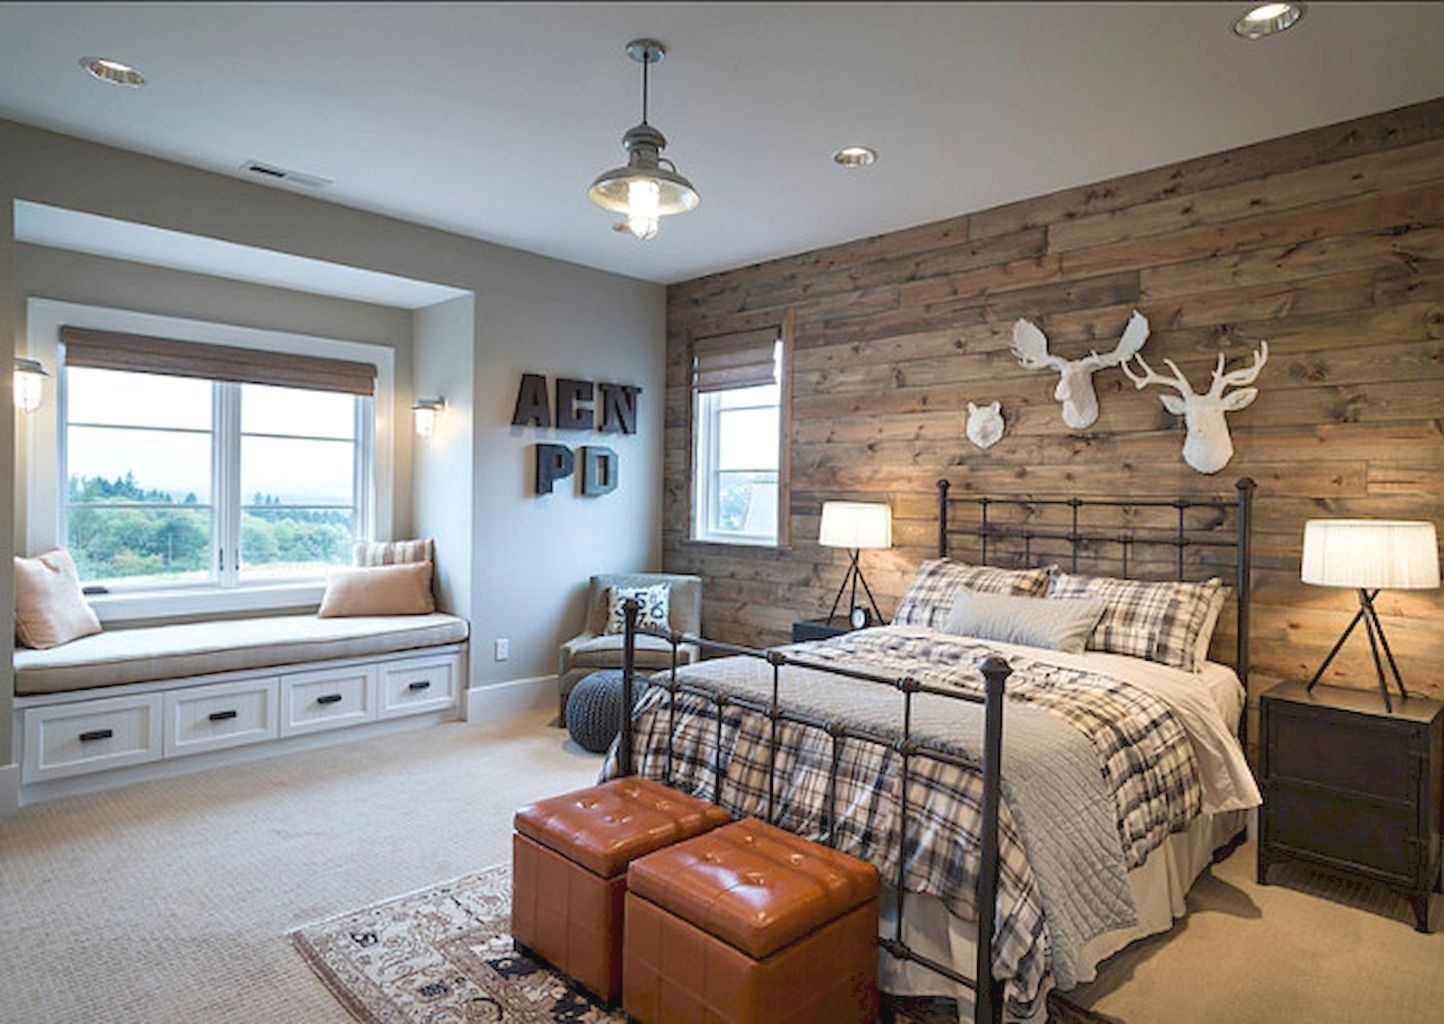 Industrial Decorating Ideas and Tips Farmhouse bedroom